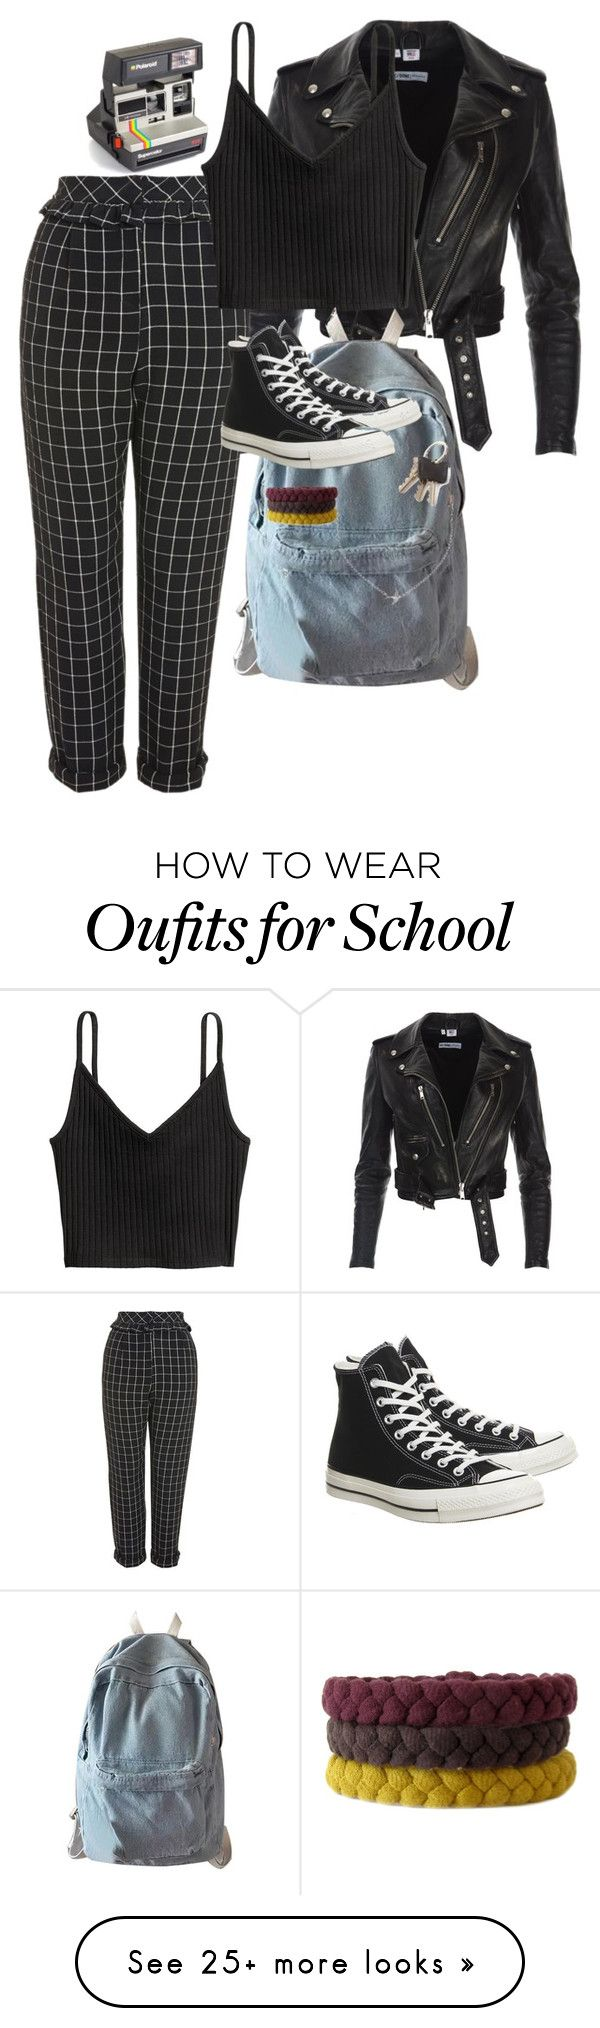 """Untitled #1049"" by royalcouncil on Polyvore featuring Topshop, H&M, Polaroid, WithChic, Converse and Minnie Grace"